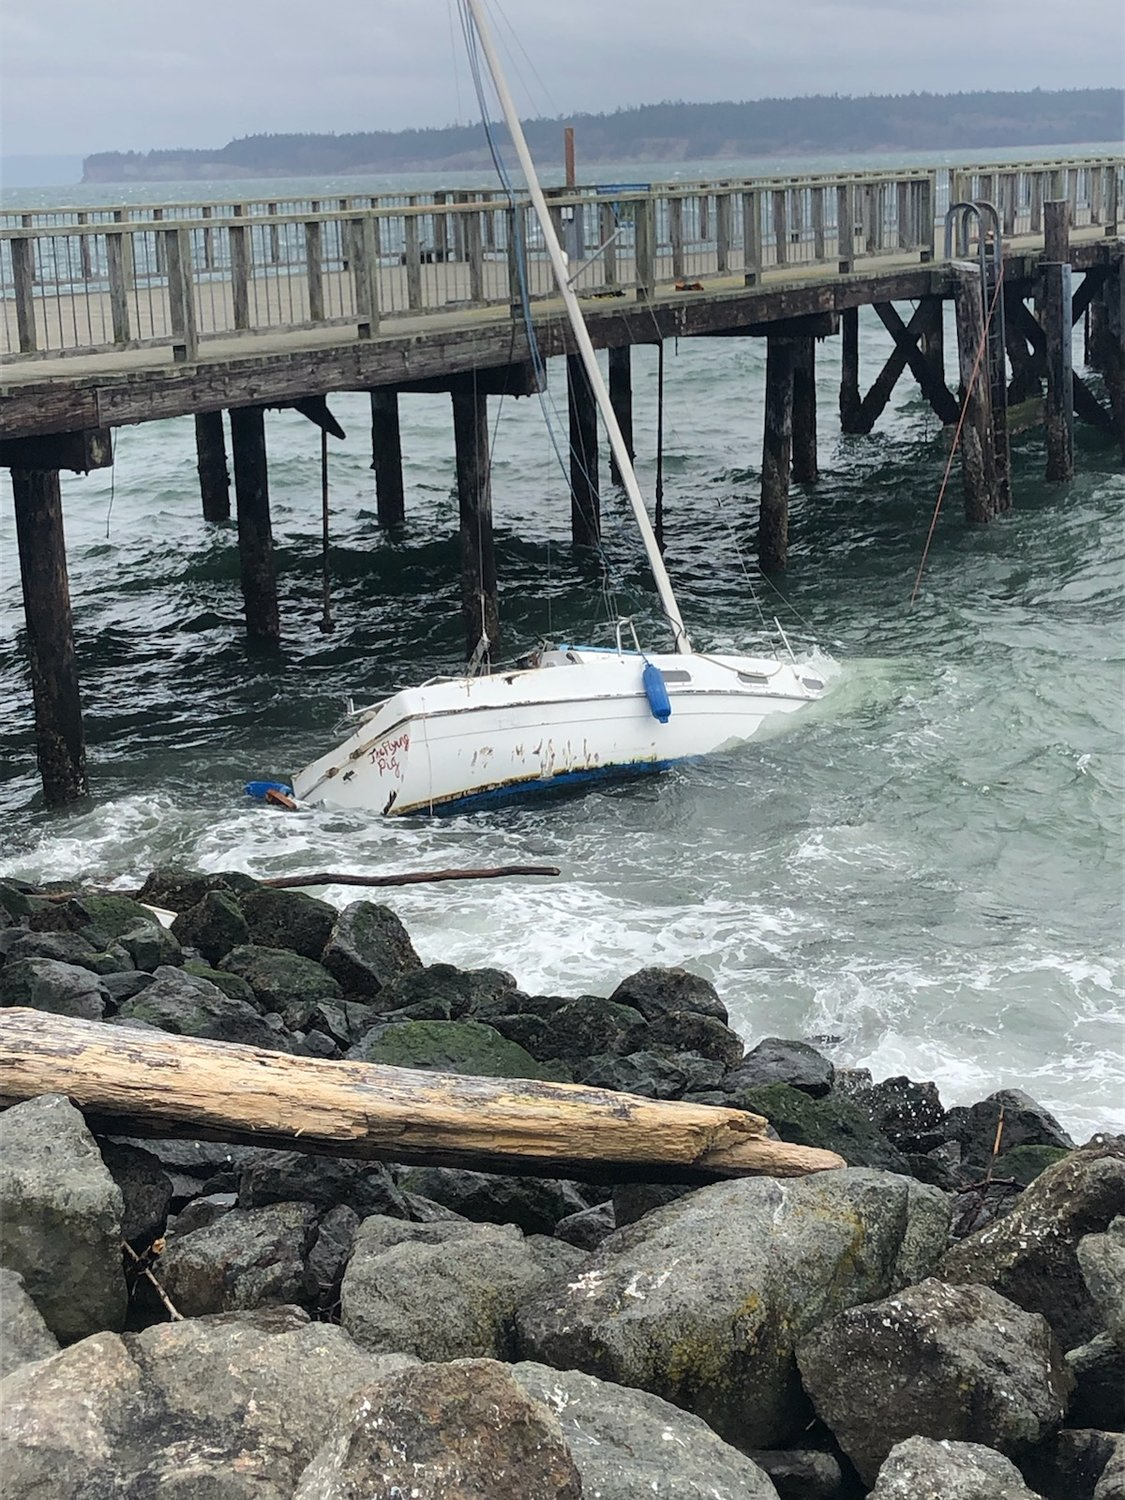 """A sailboat bearing the name """"Flying Pig"""" met an unfavorable fate Sunday near the city dock. PHOTO COURTESY PORT OF PORT TOWNSEND."""